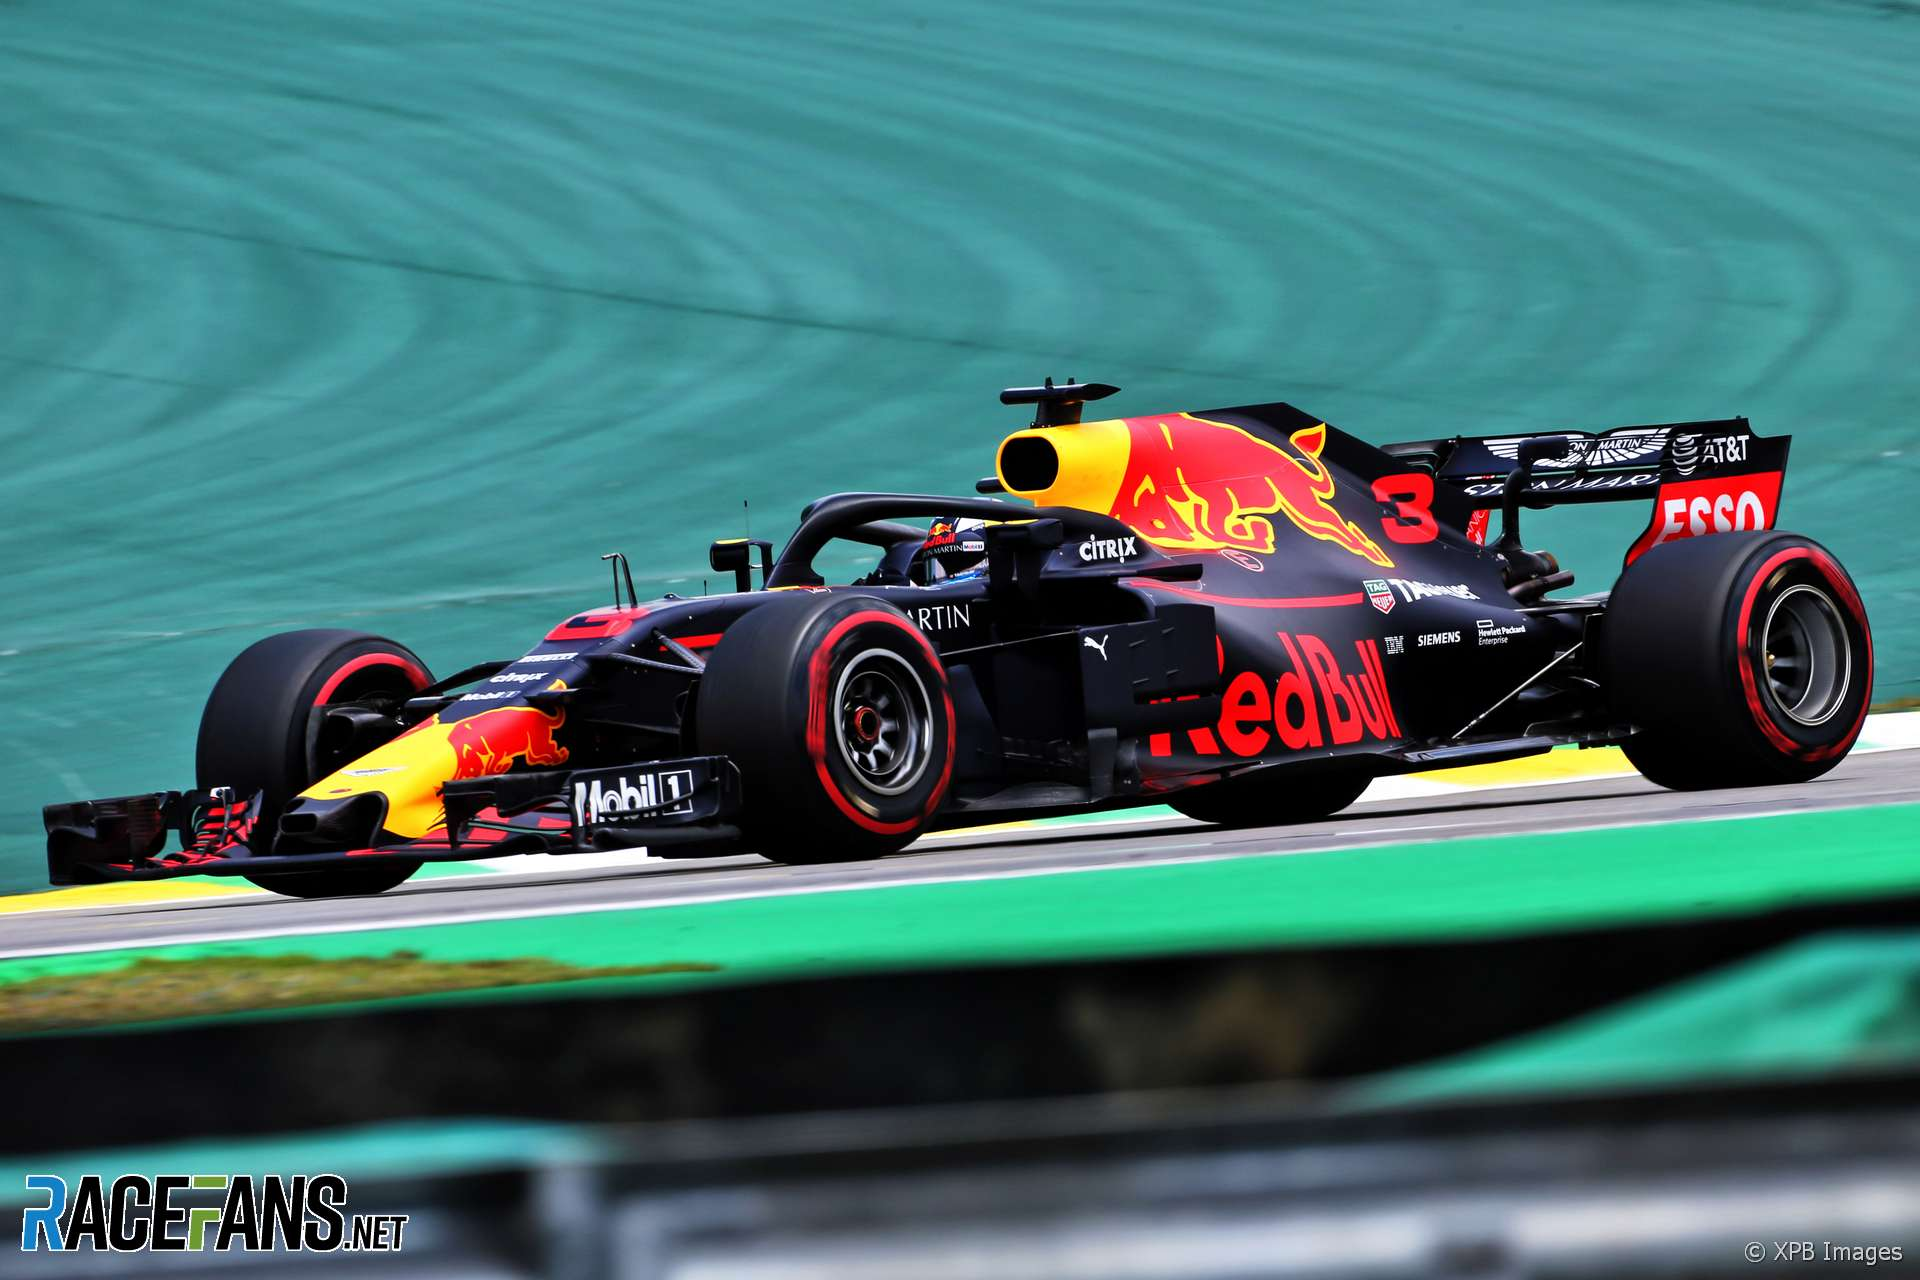 Daniel Ricciardo, Red Bull, Interlagos, 2018